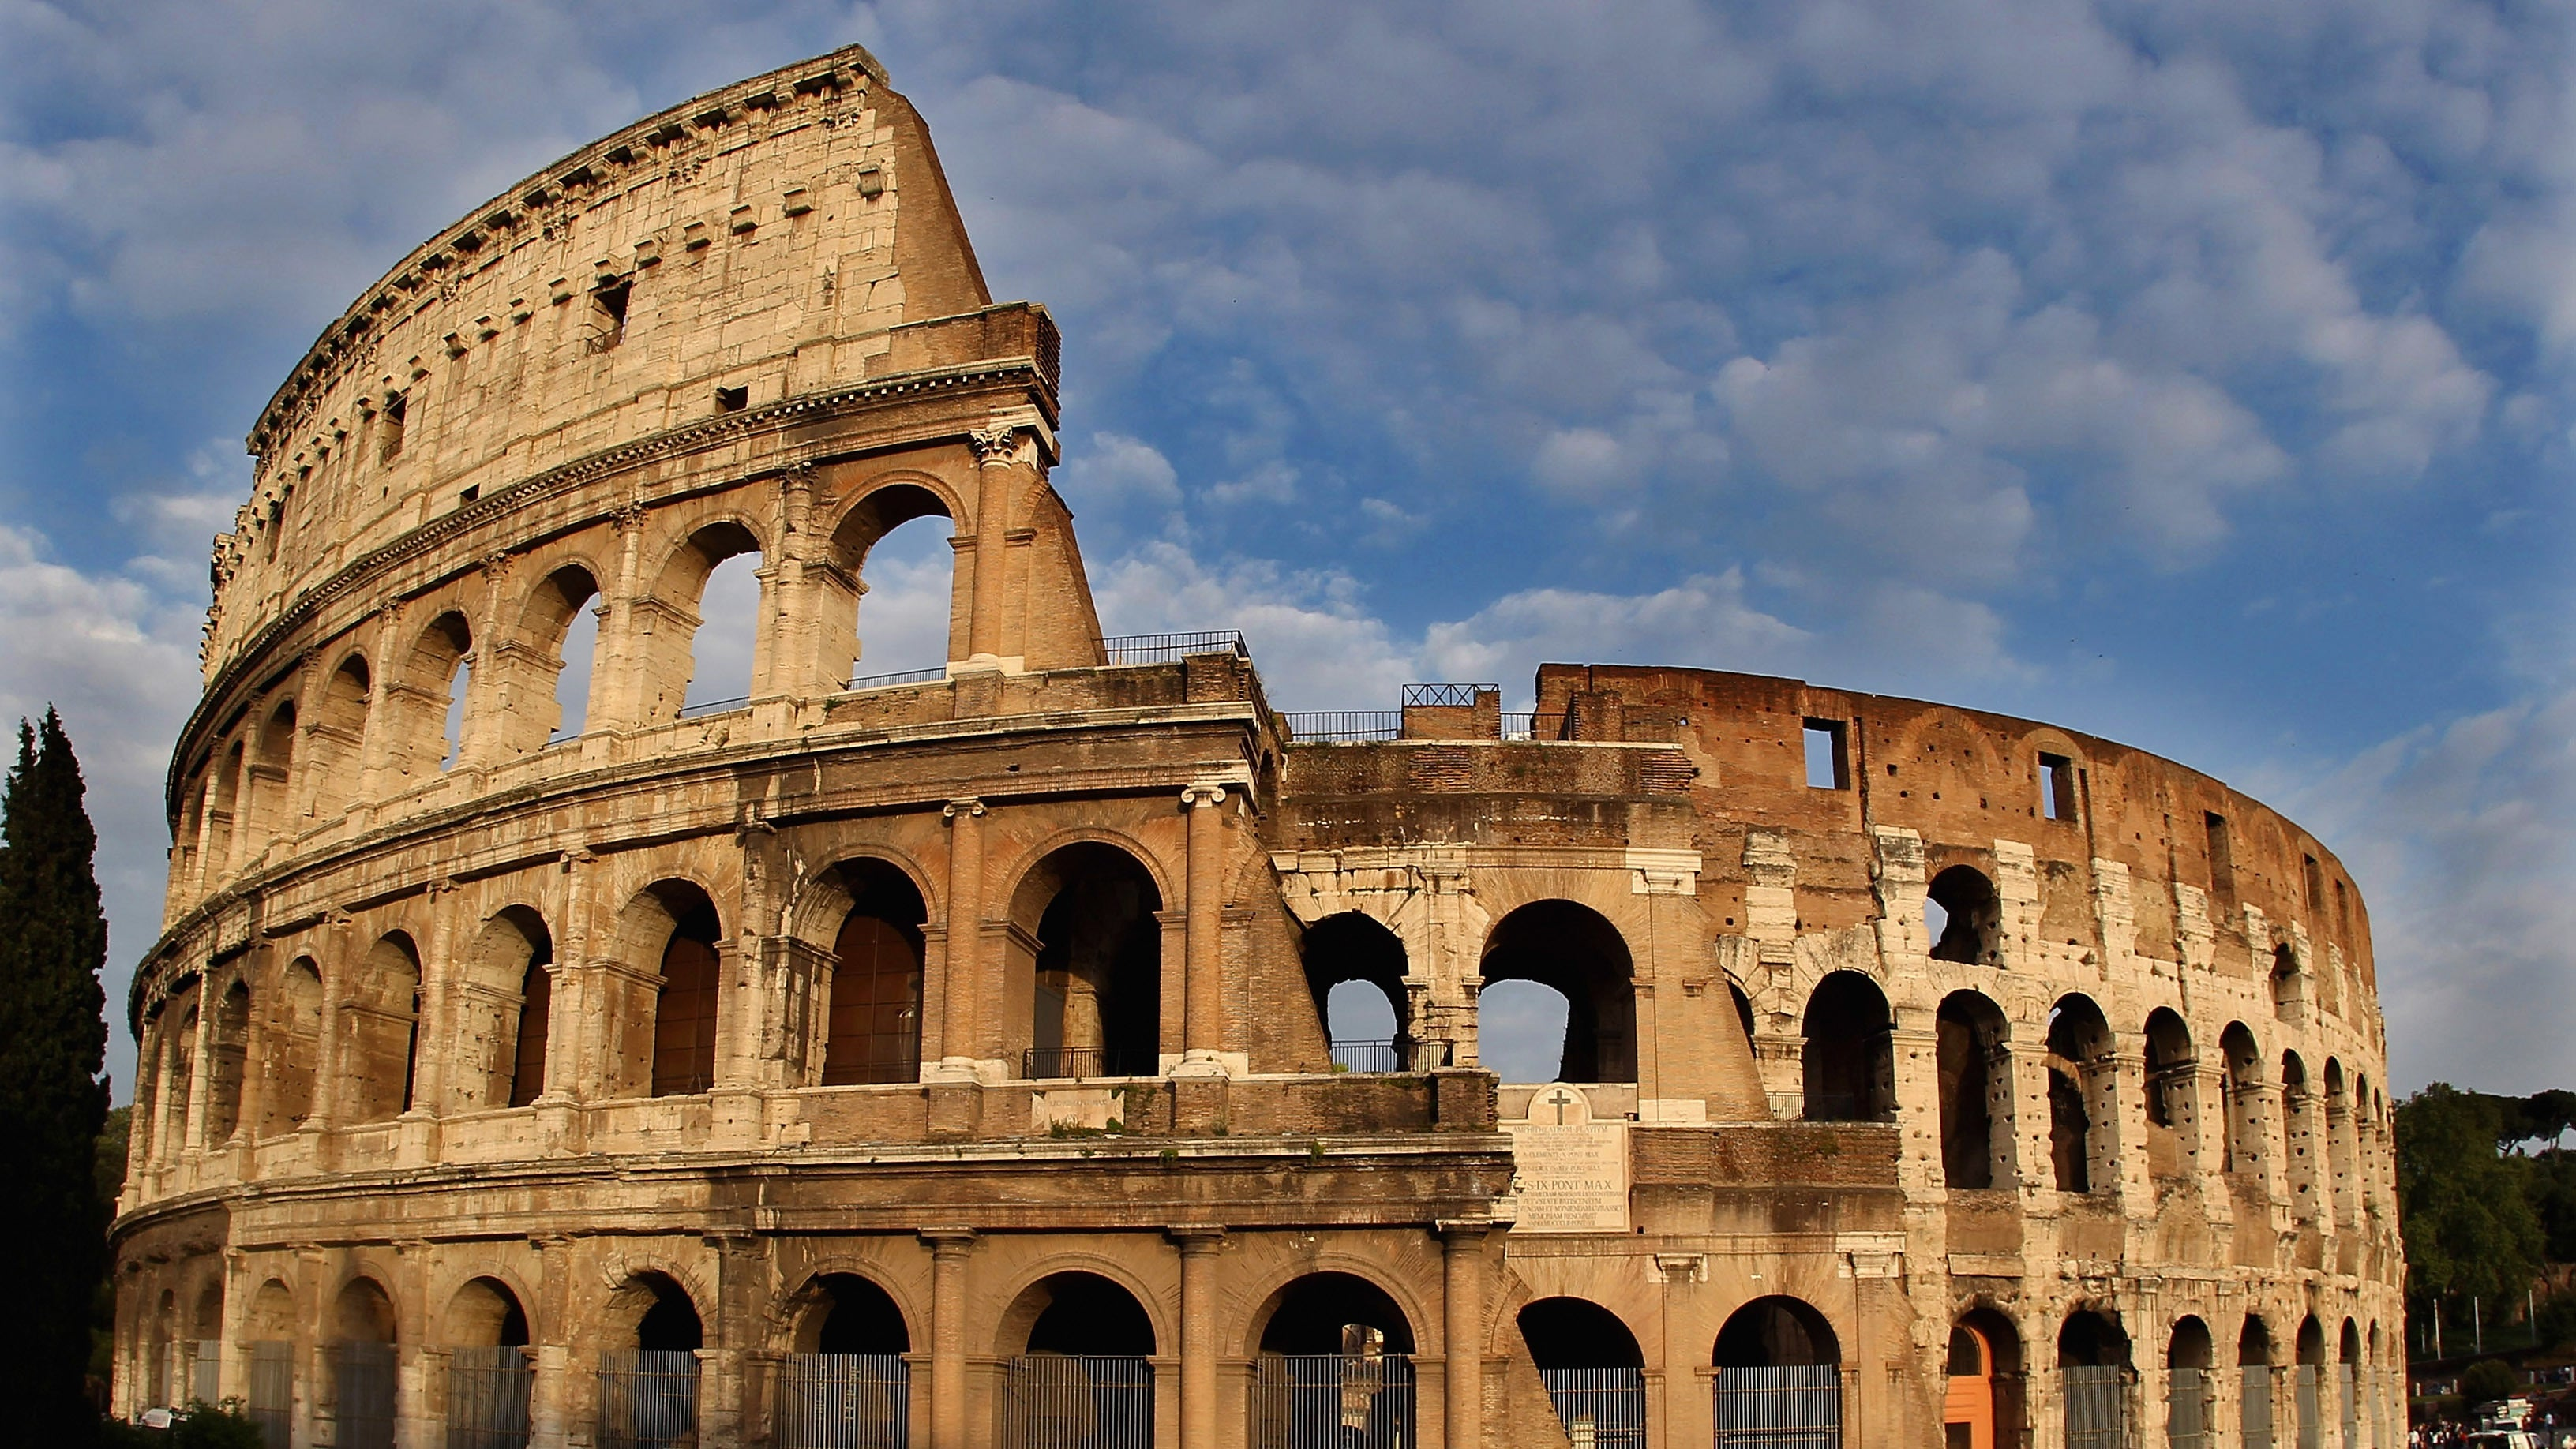 the romans could have been poisoned by something deadlier than